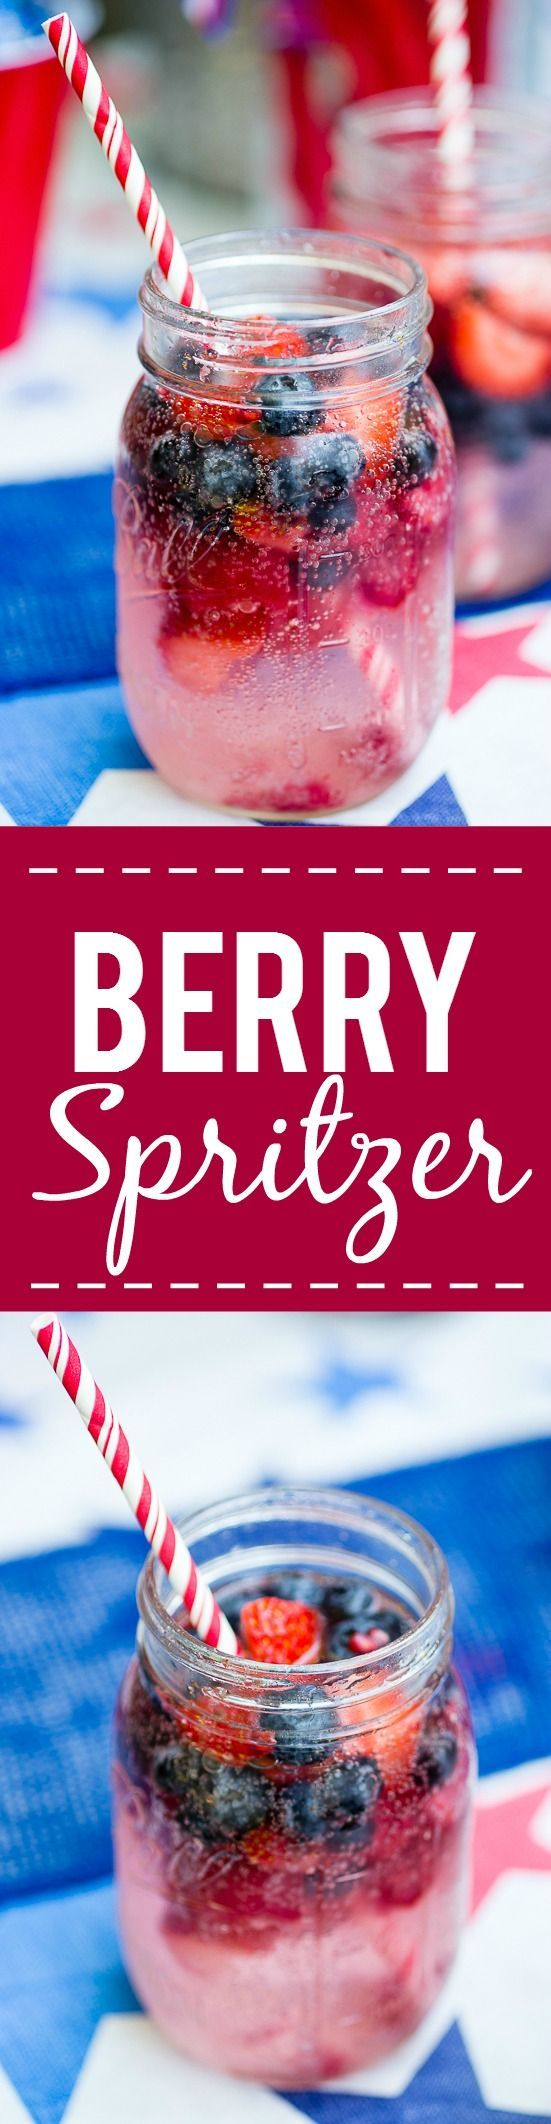 Patriotic Berry Spritzer - Fresh and full of sweet berries, this Berry Spritzer is a pretty and refreshing beverage that's patriotic too! Perfect for any occasion and using up ripe Summer berries! Yum